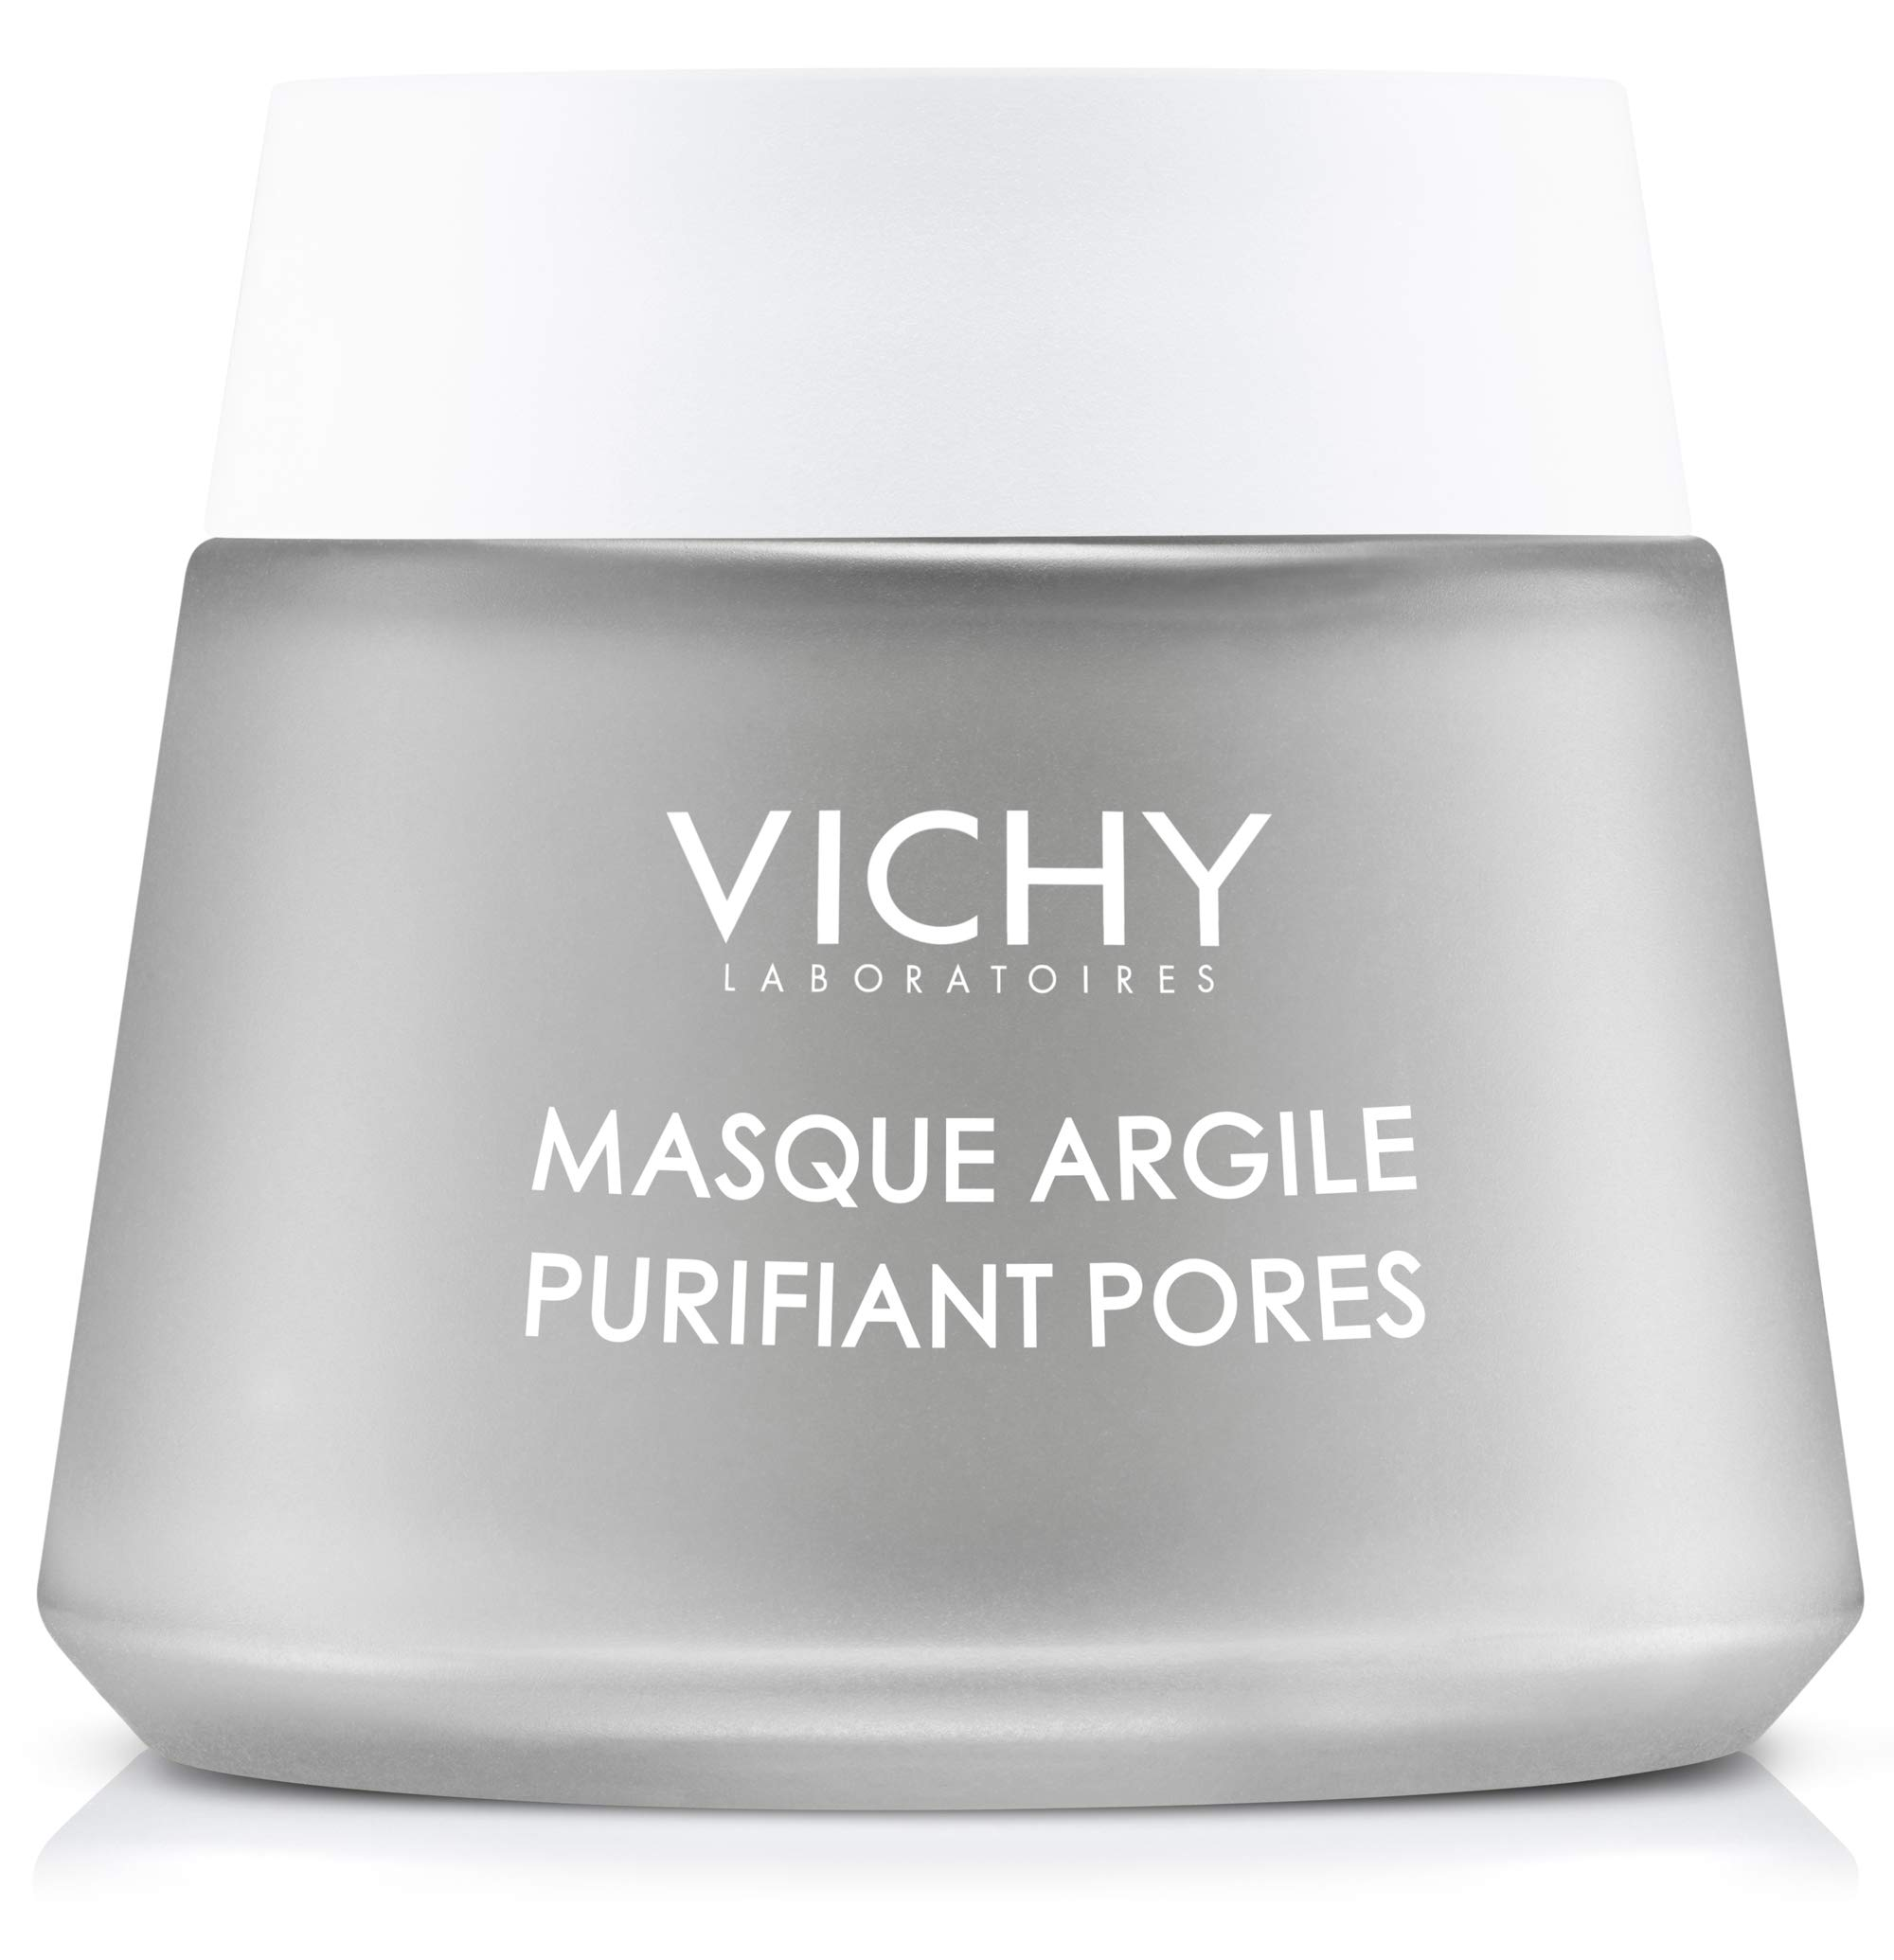 Vichy Pore Purifying Clay Mask with Aloe Vera to Remove Impurities & Soften Skin , Paraben-Free, 2.54 Fl. Oz.